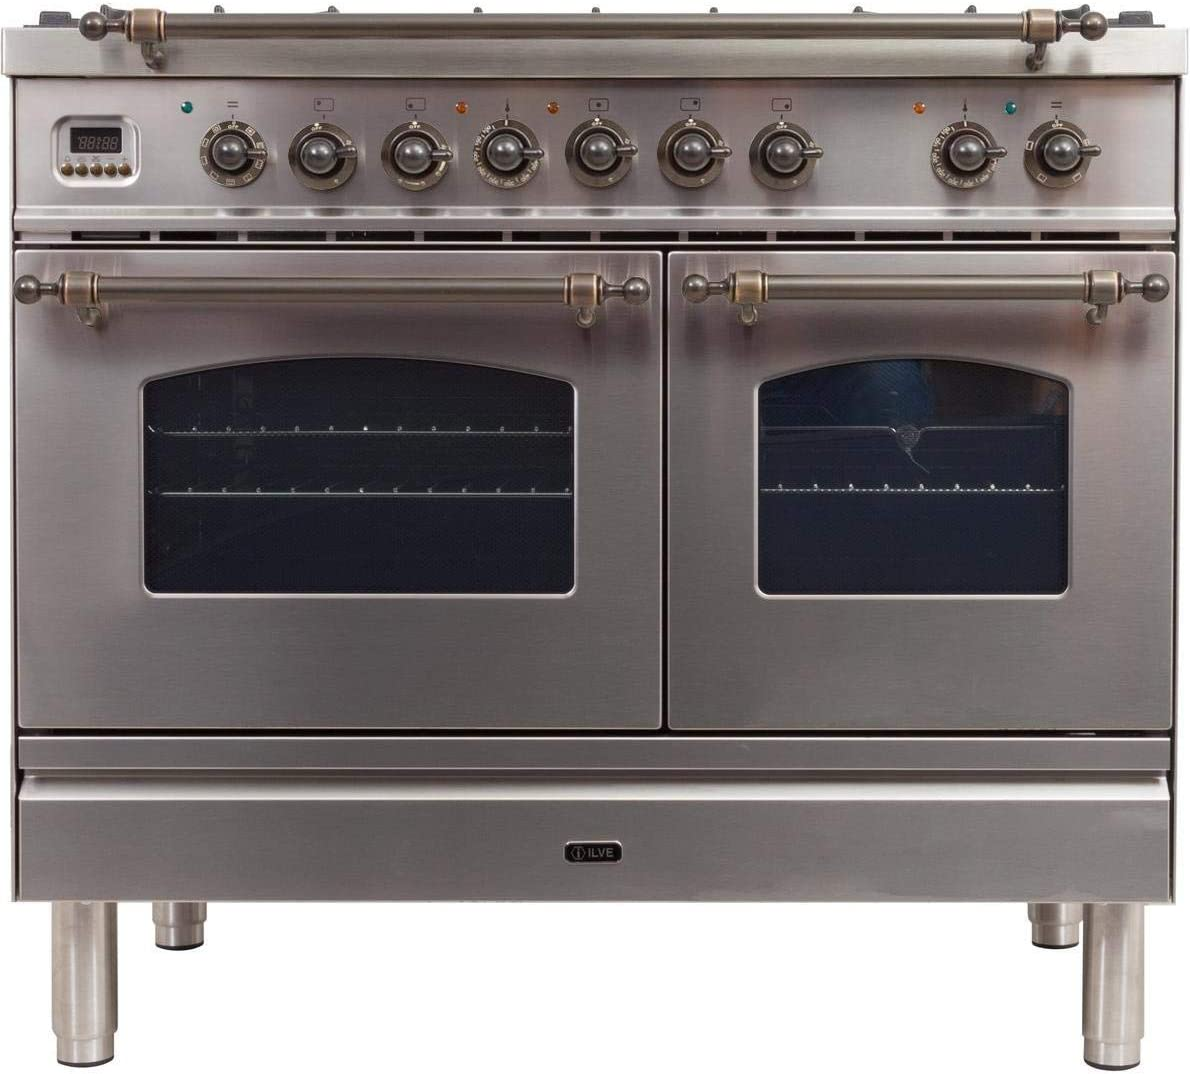 Ilve UPDN100FDMPIYLP Nostalgie Series 40 Inch Dual Fuel Convection Freestanding Range, 5 Sealed Brass Burners, 4 cu.ft. Total Oven Capacity in Stainless Steel, Bronze Trim (Liquid Propane)